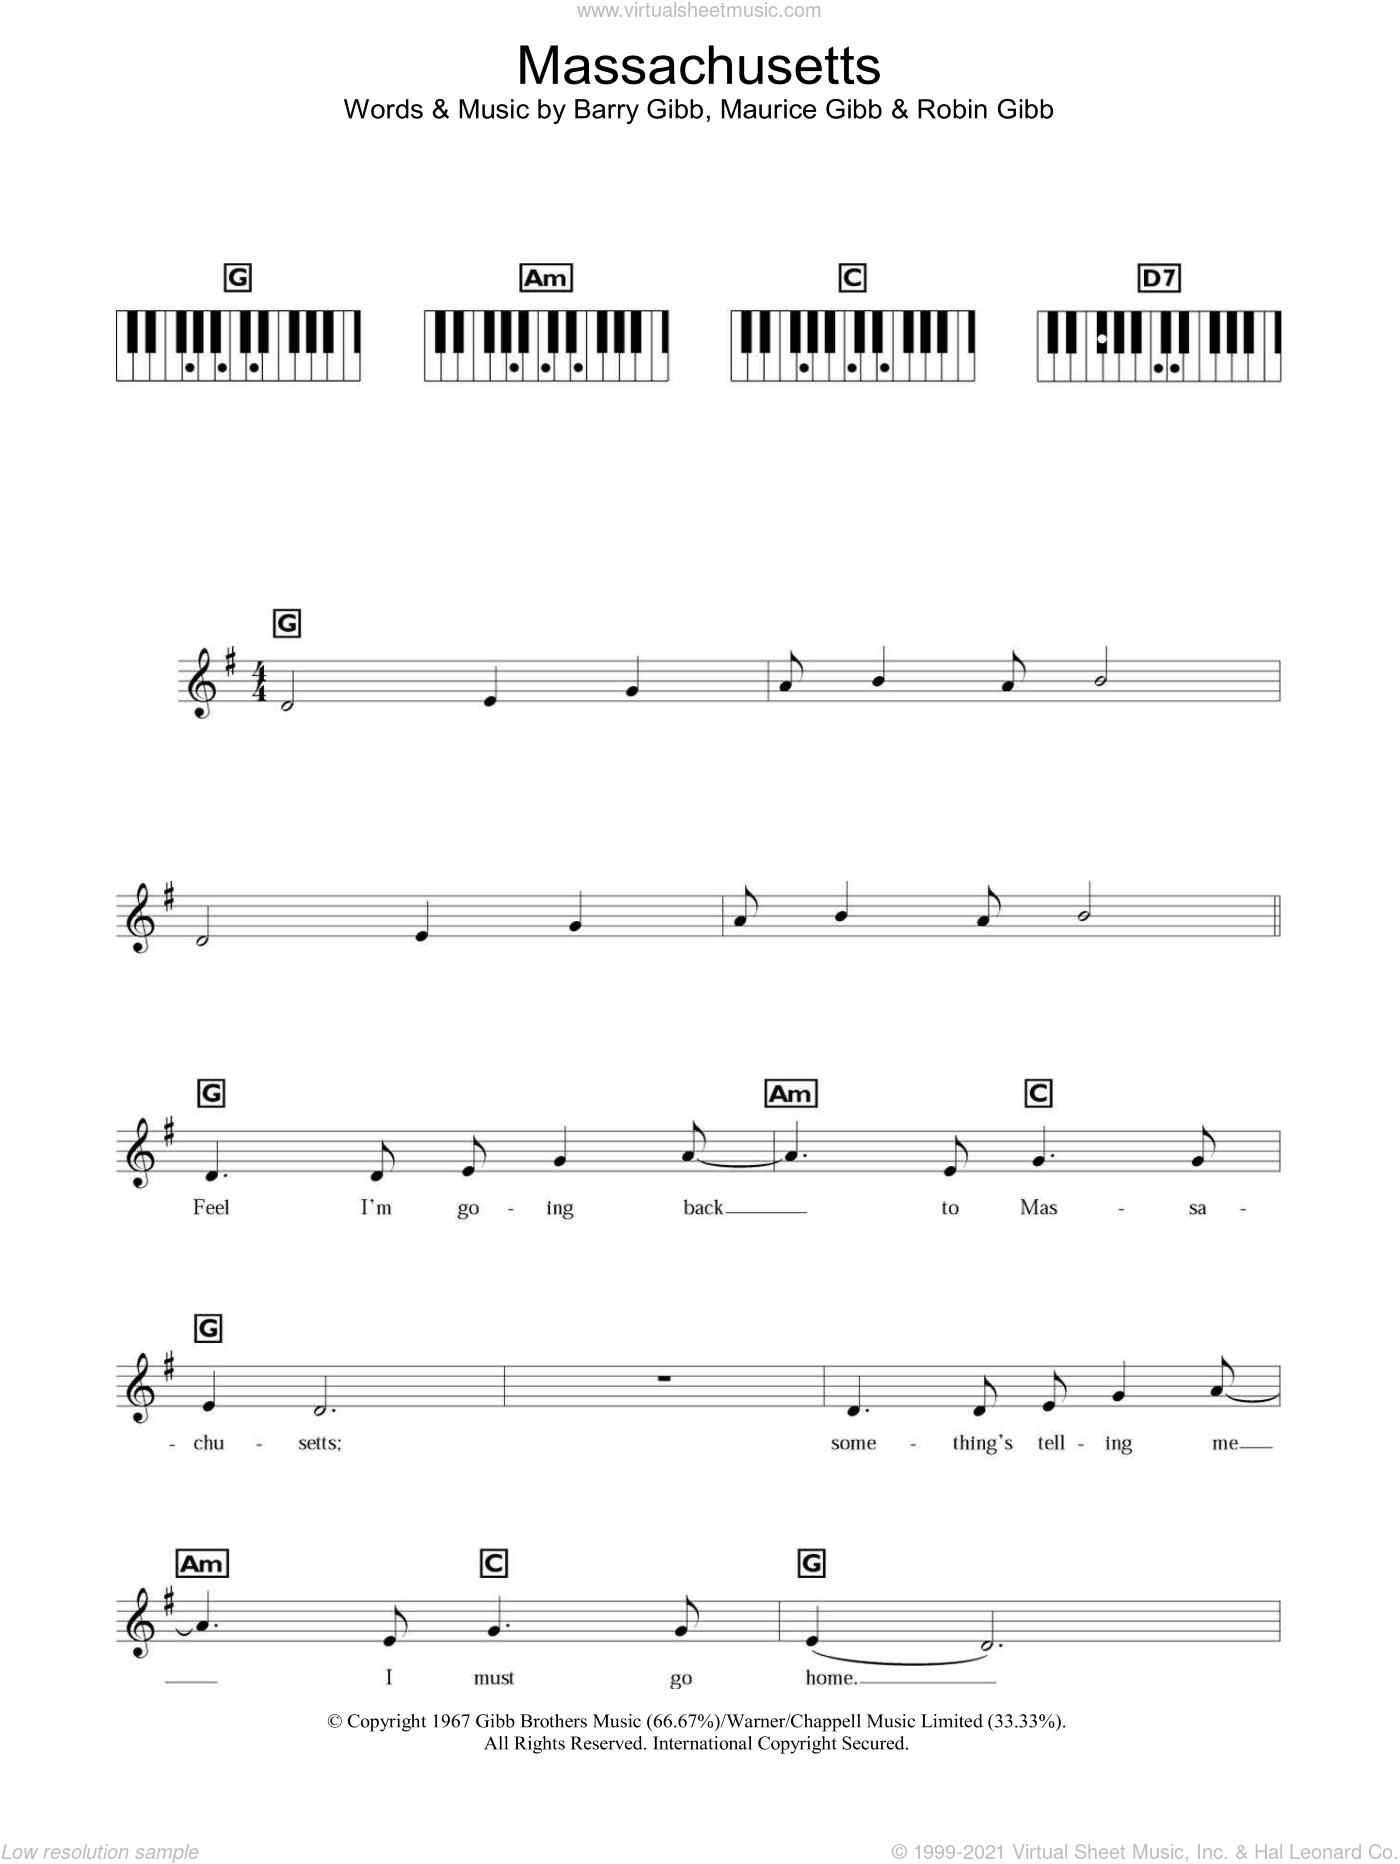 Massachusetts (The Lights Went Out) sheet music for piano solo (chords, lyrics, melody) by Robin Gibb